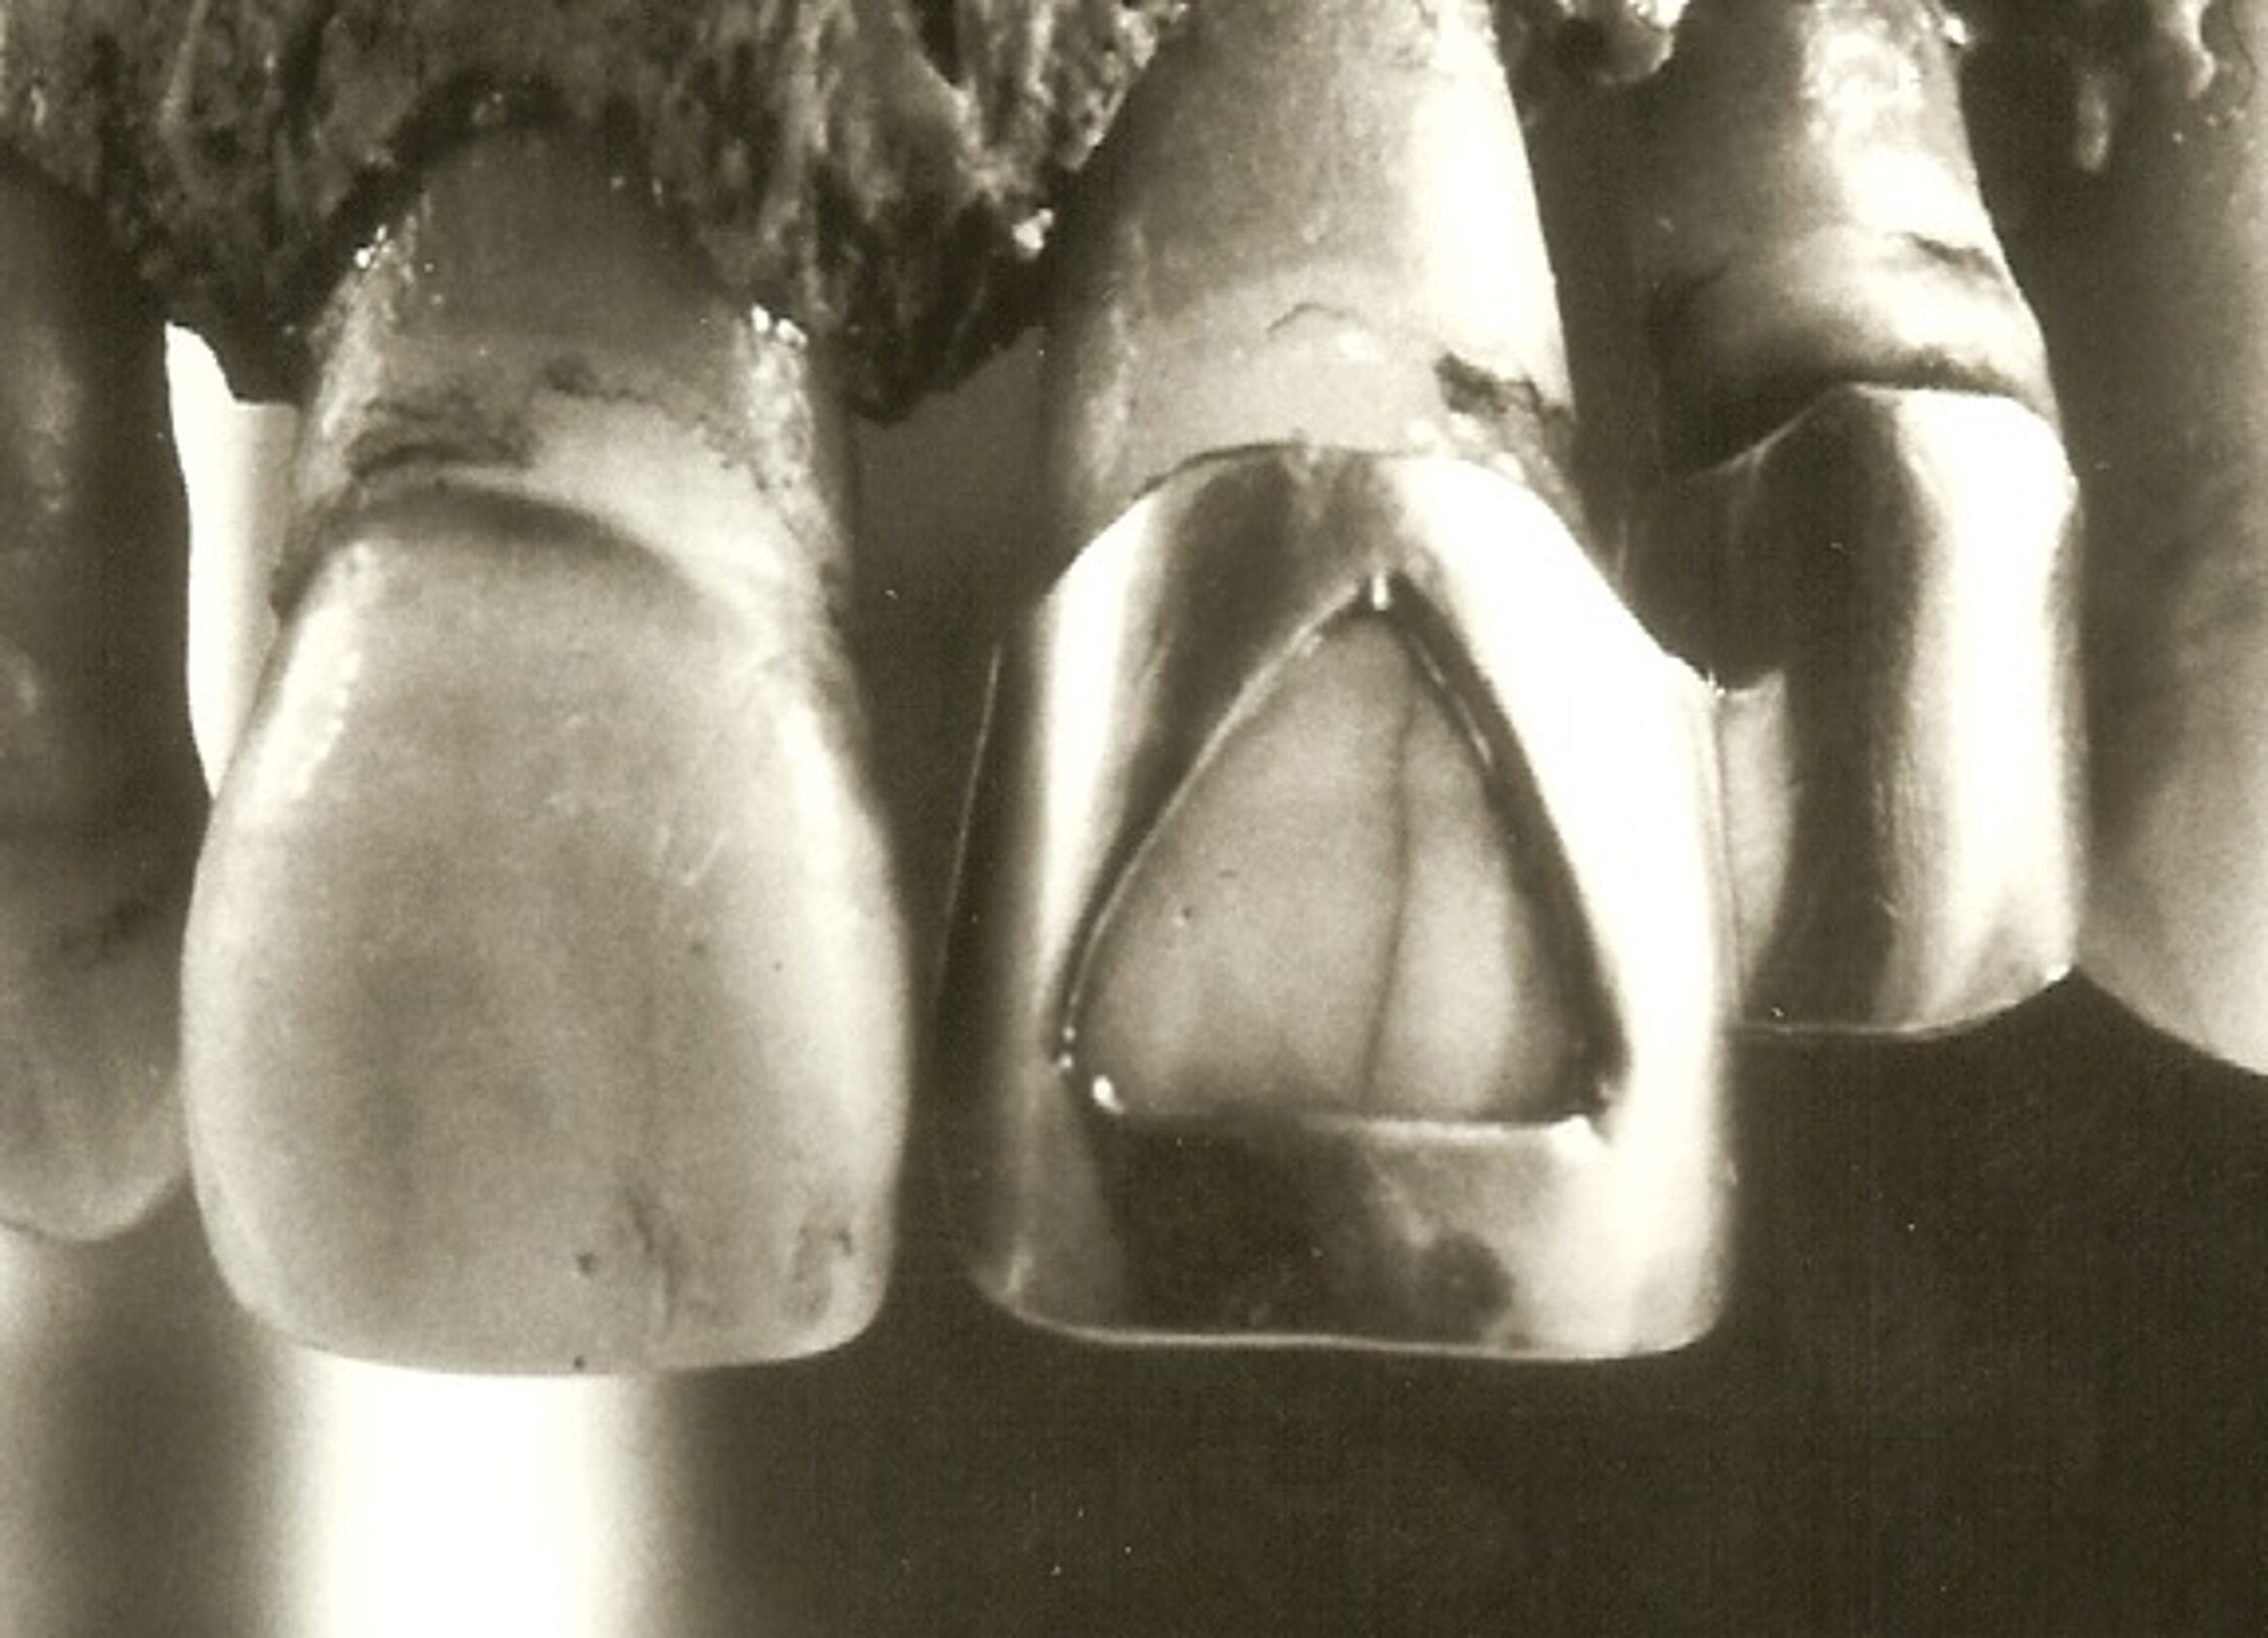 The skeletal remains found by law enforcement in 1977 had two distinctive gold teeth. An investigator is trying to identify the female victim.